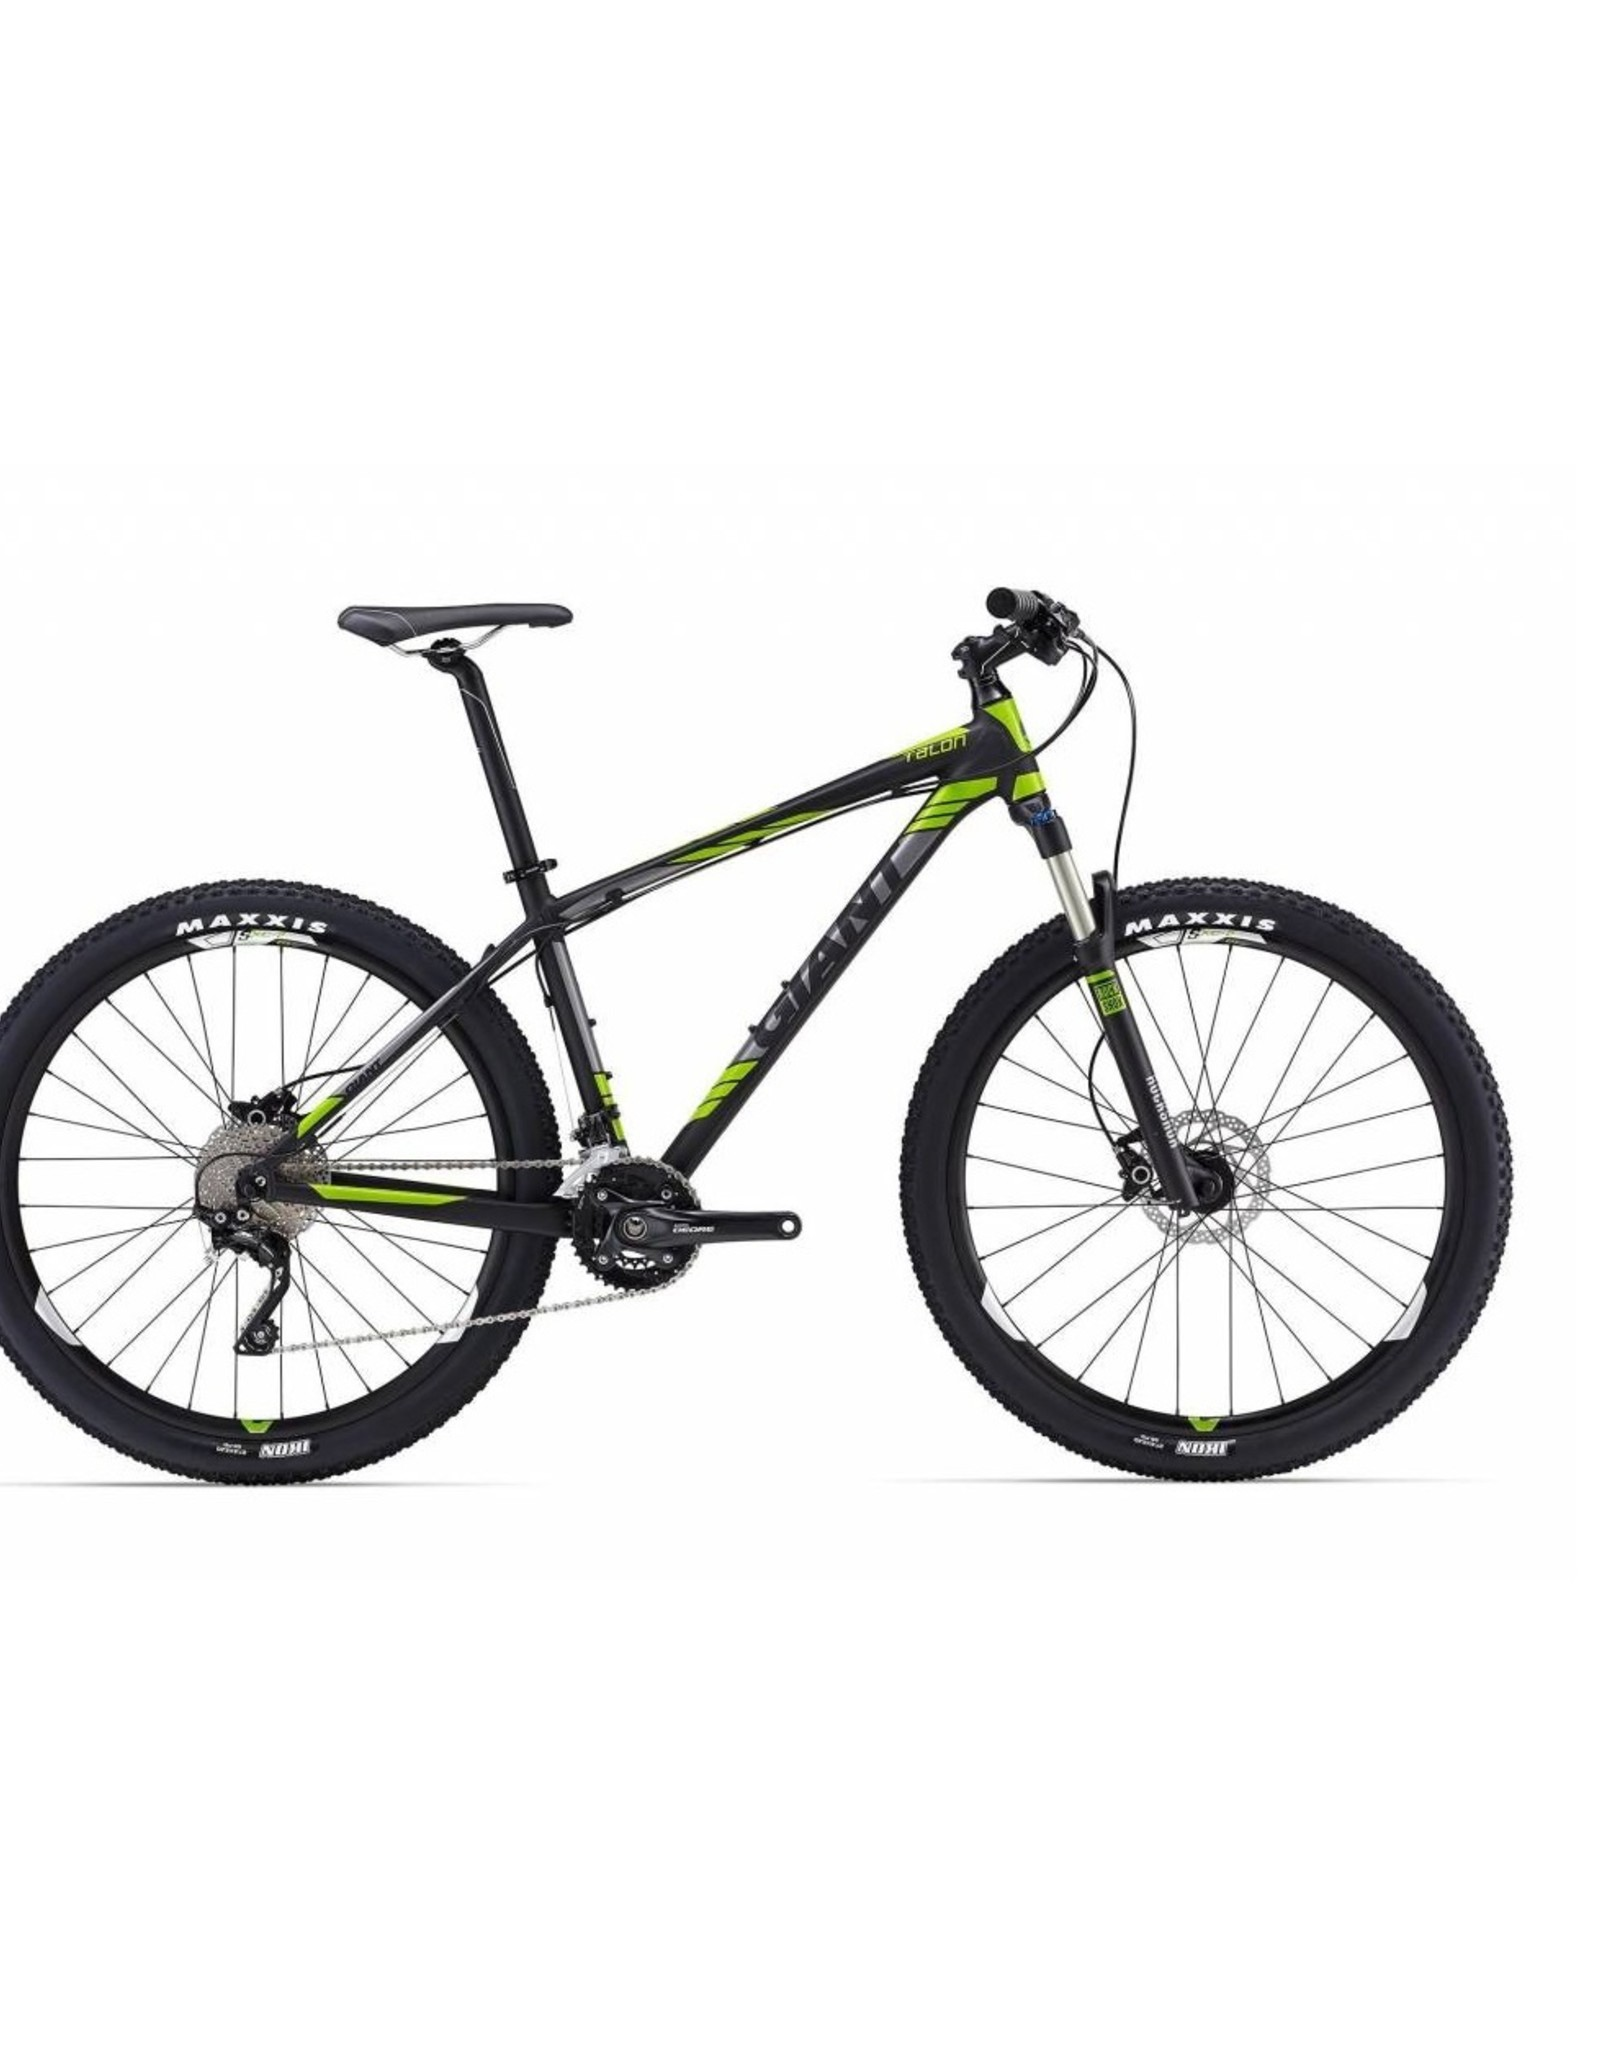 Giant Giant Talon 27.5 1 2016 Bicycle